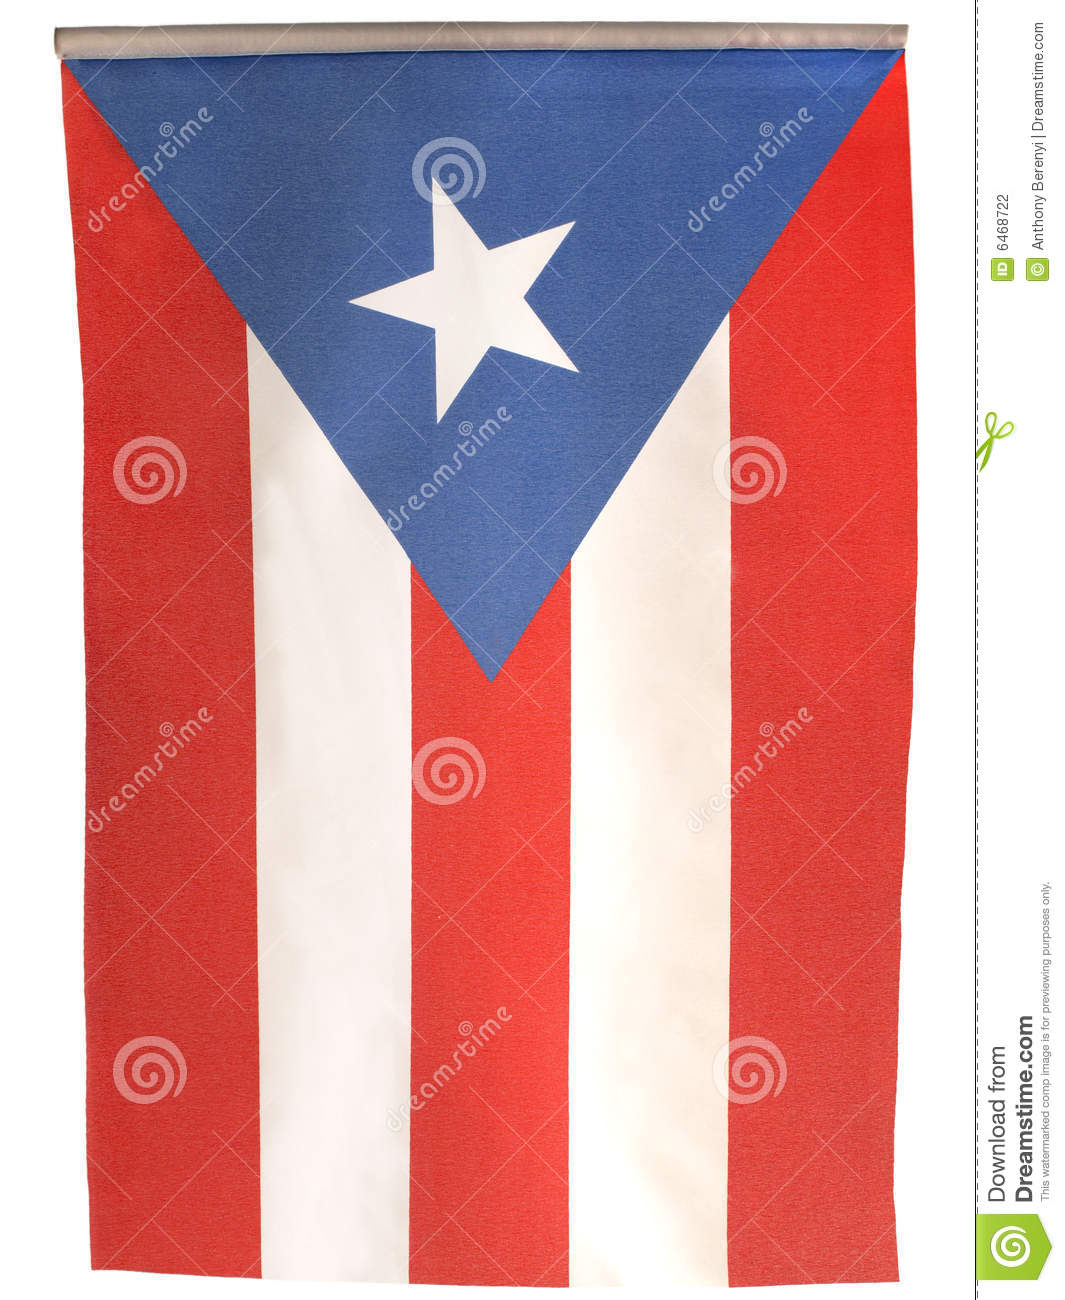 Vertical flag puerto rico flag stock photo image of nation rico vertical flag puerto rico flag biocorpaavc Image collections